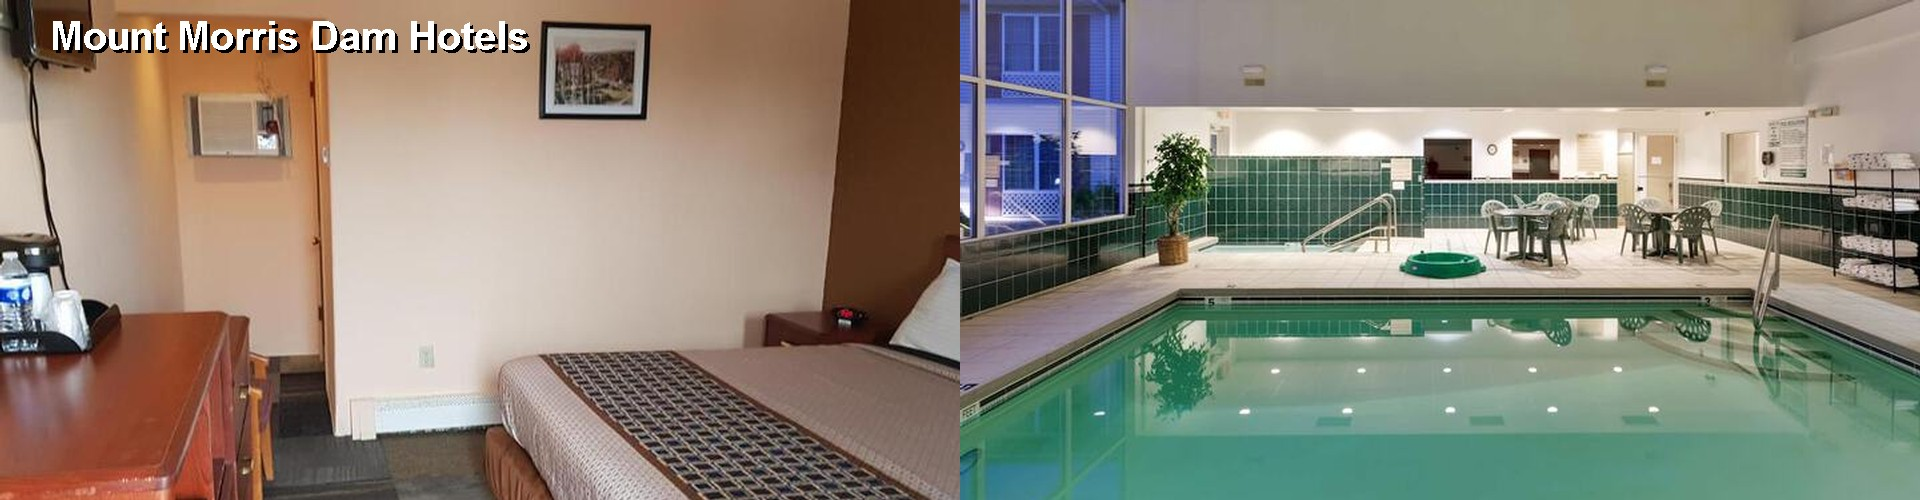 5 Best Hotels near Mount Morris Dam